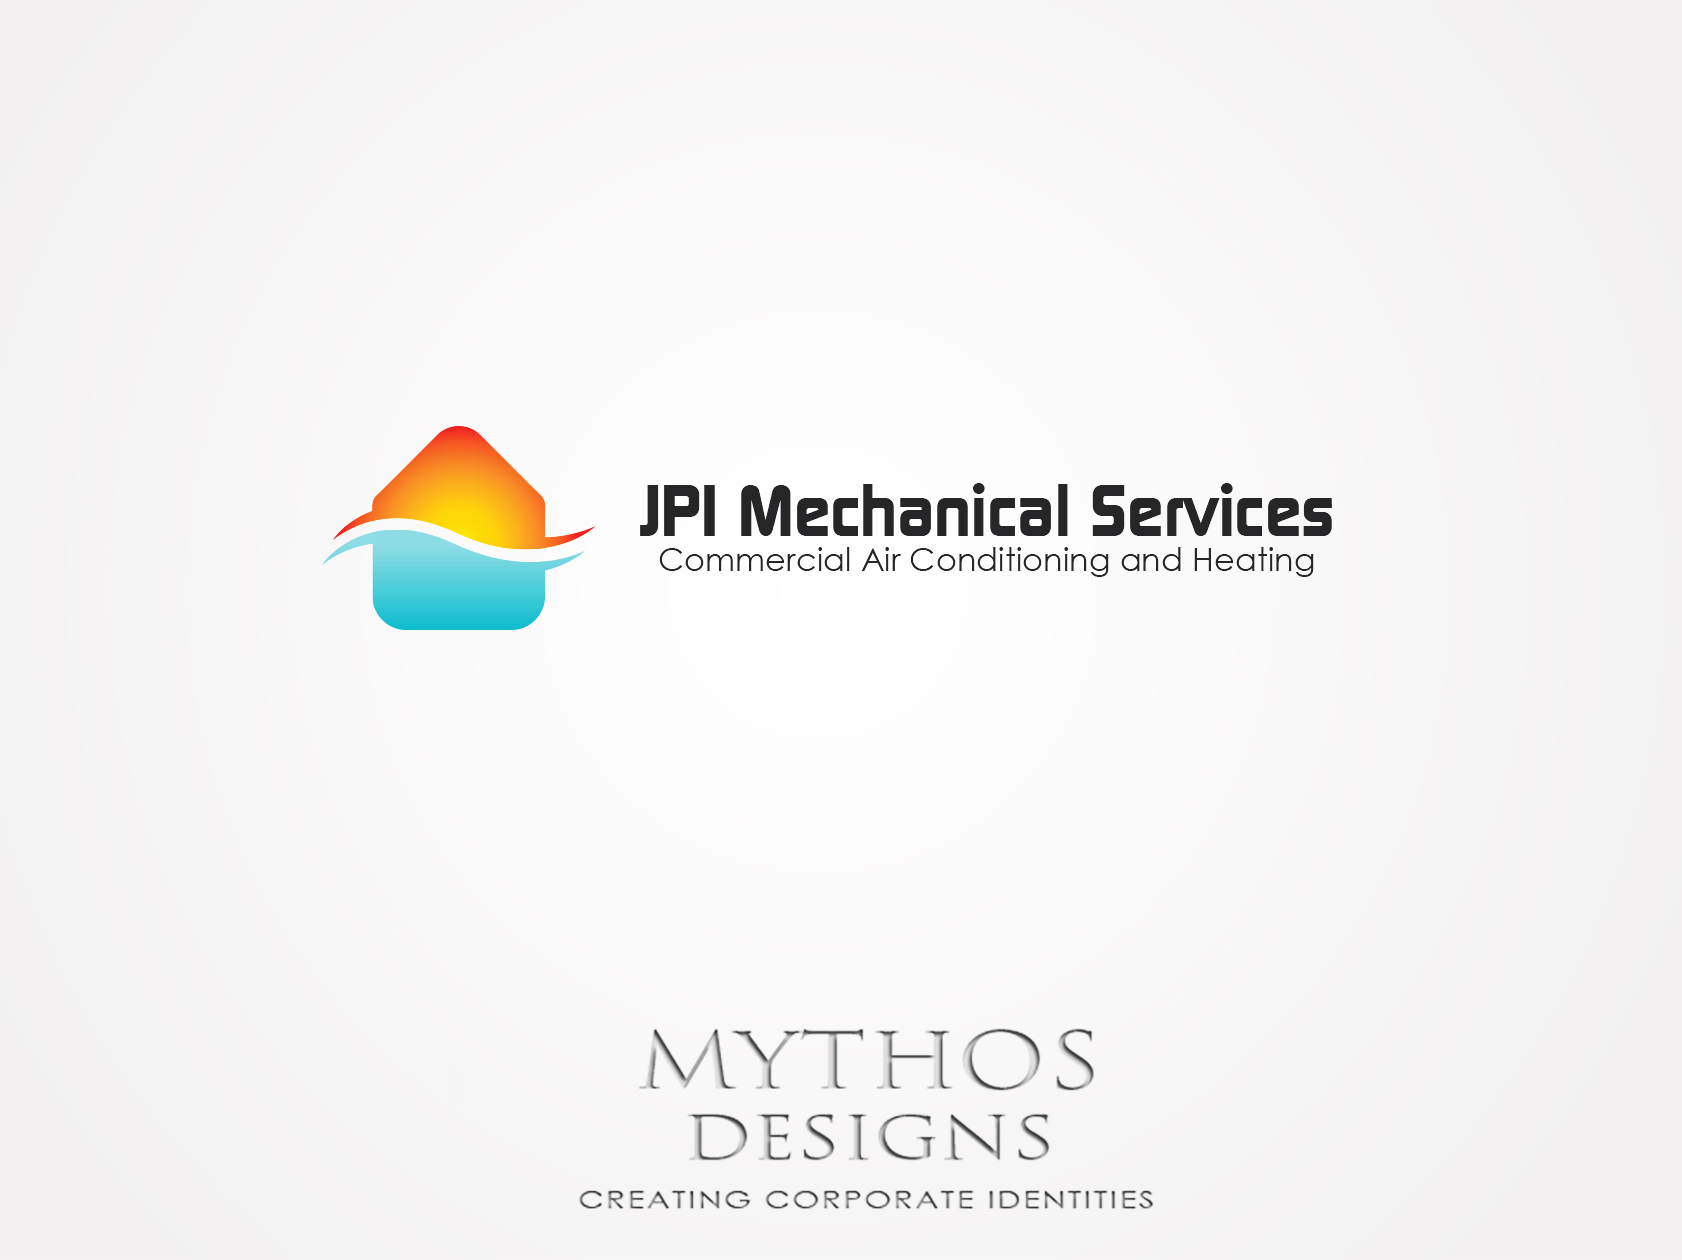 Logo Design by Mythos Designs - Entry No. 74 in the Logo Design Contest Inspiring Logo Design for JPI Mecanical Services.